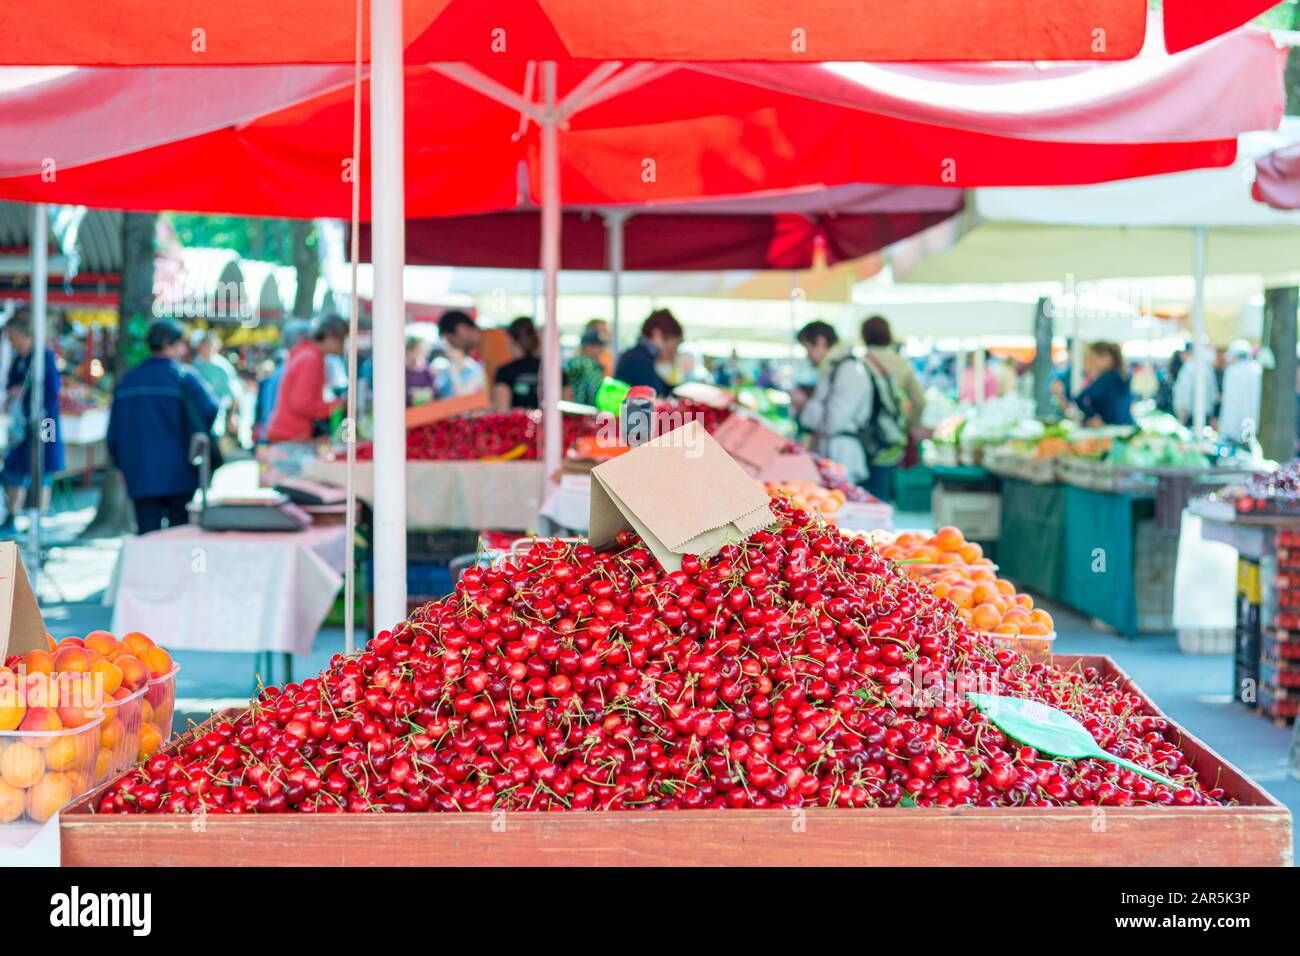 Fruitstand at open market selling fresh cherries. Stock Photo